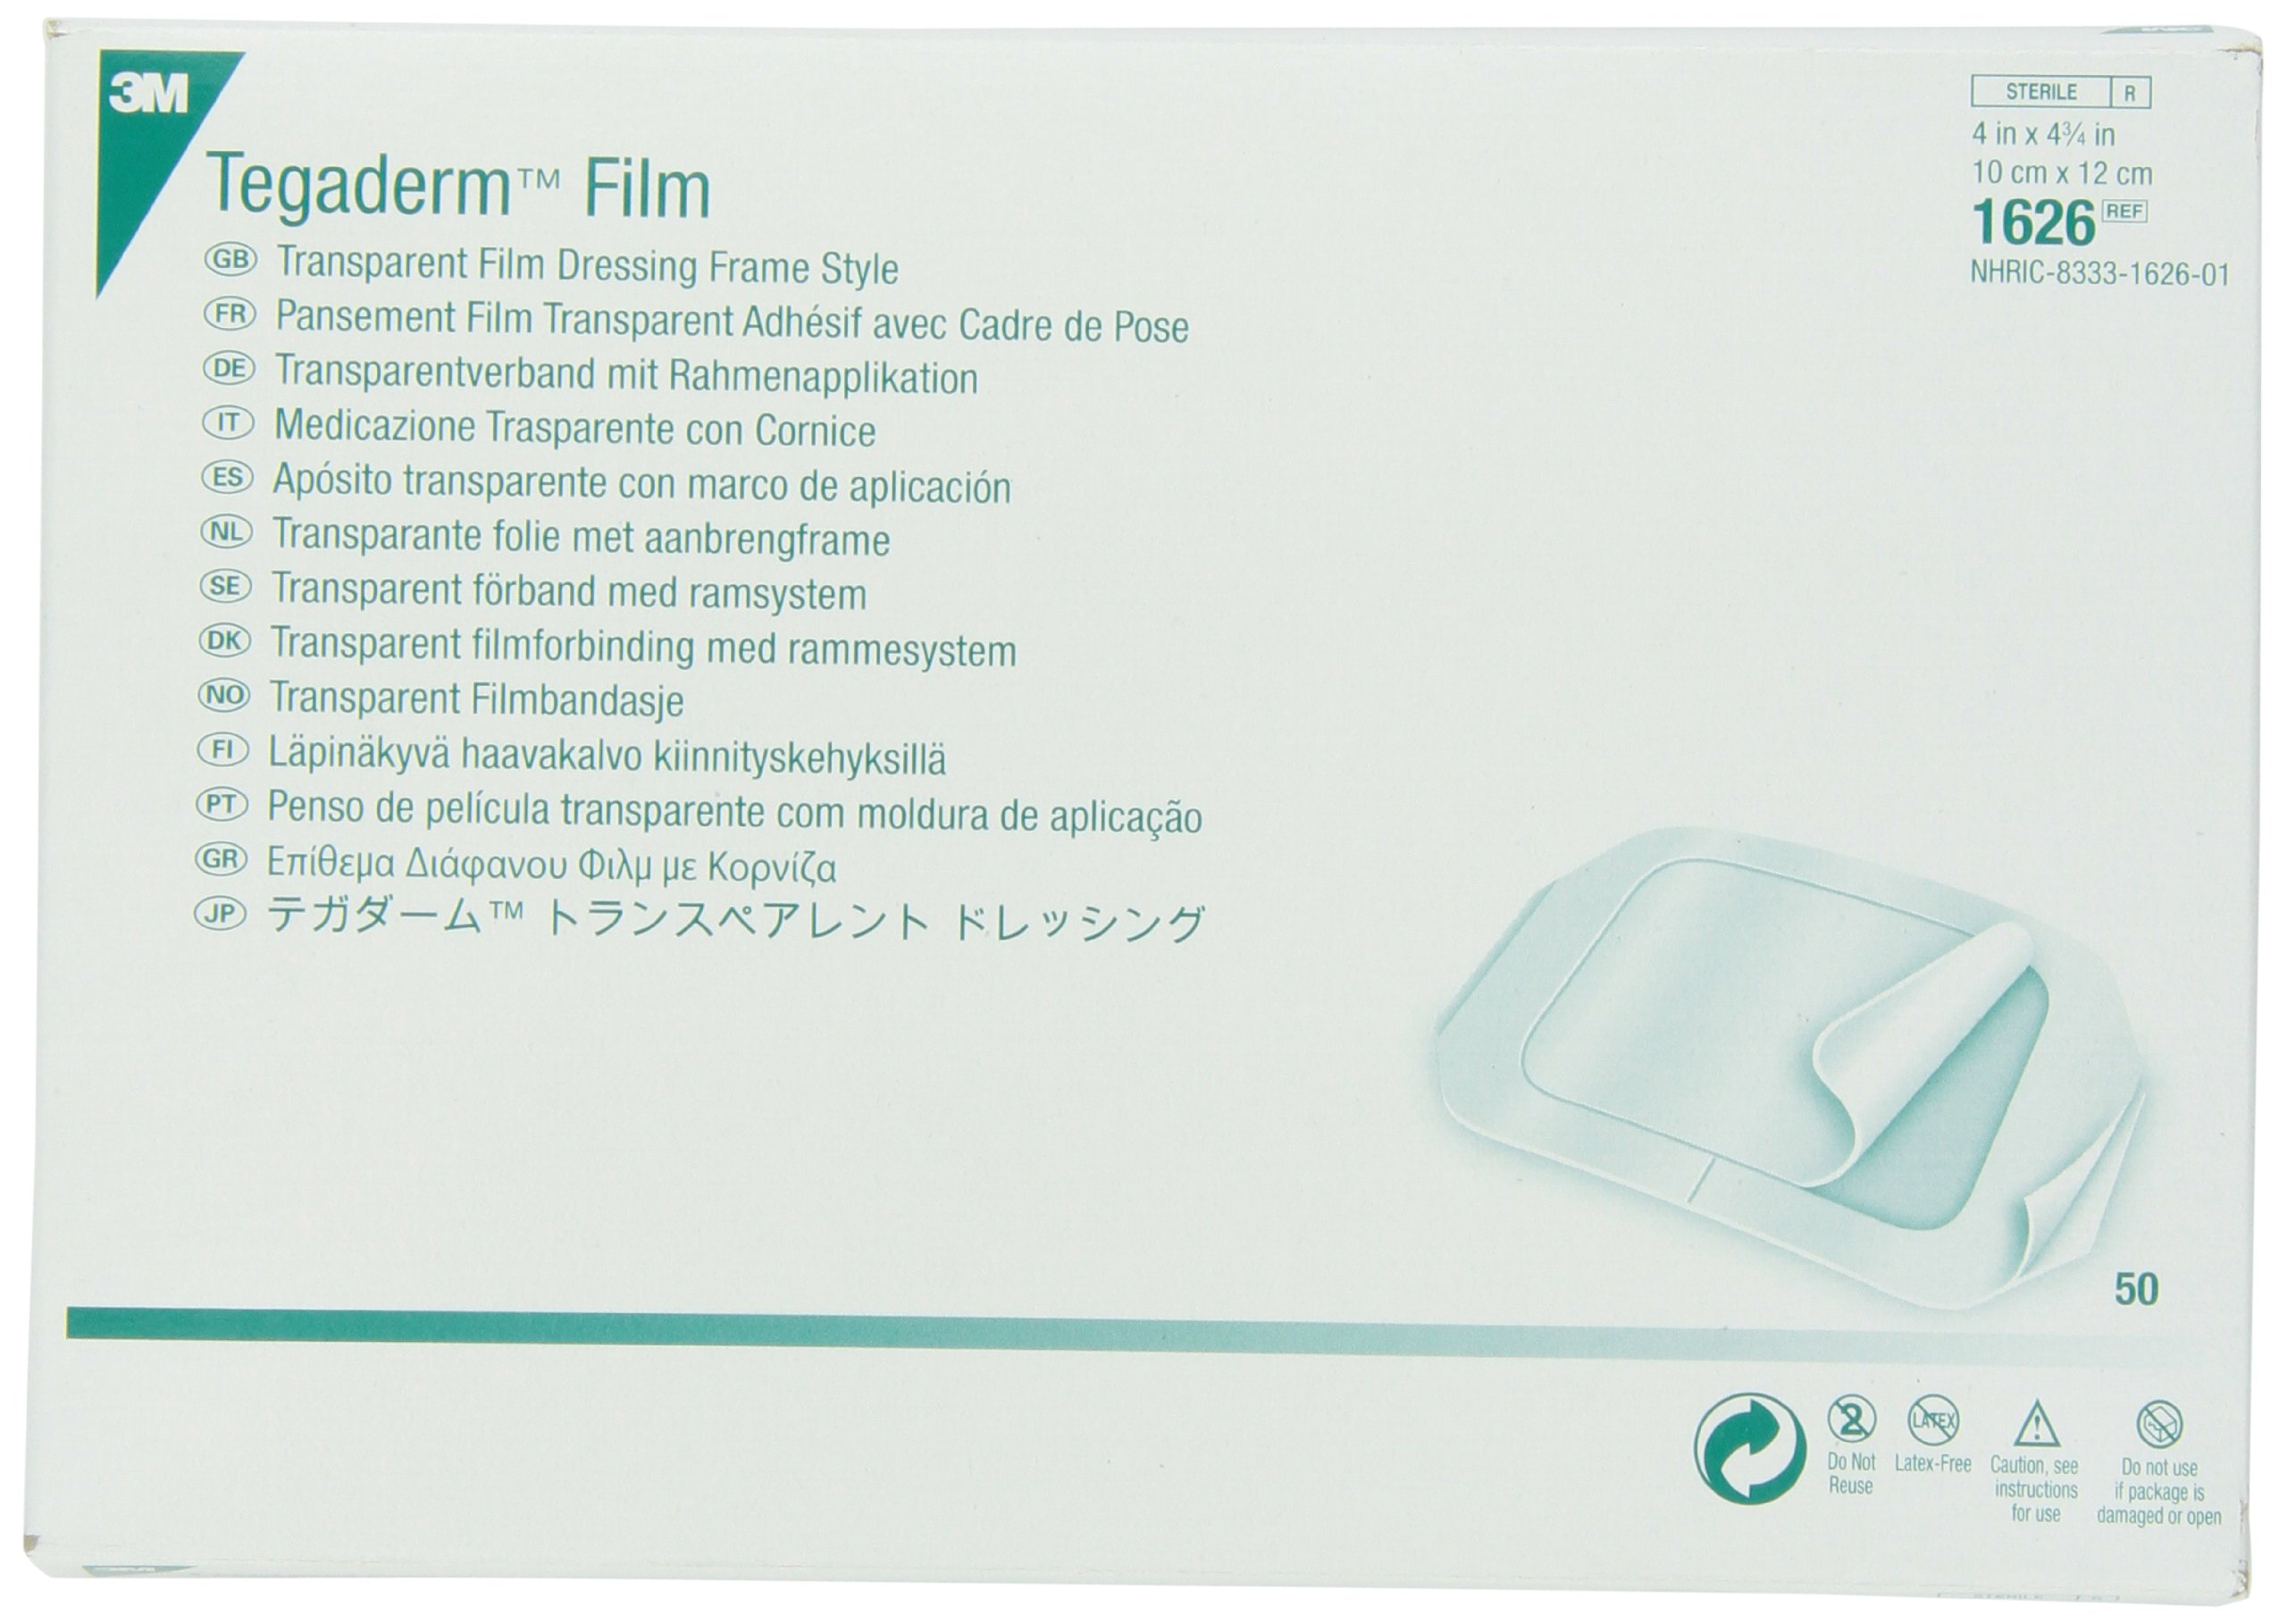 3M Tegaderm Transparent Film Dressing Frame Style 1626 (Pack of 50) by 3M